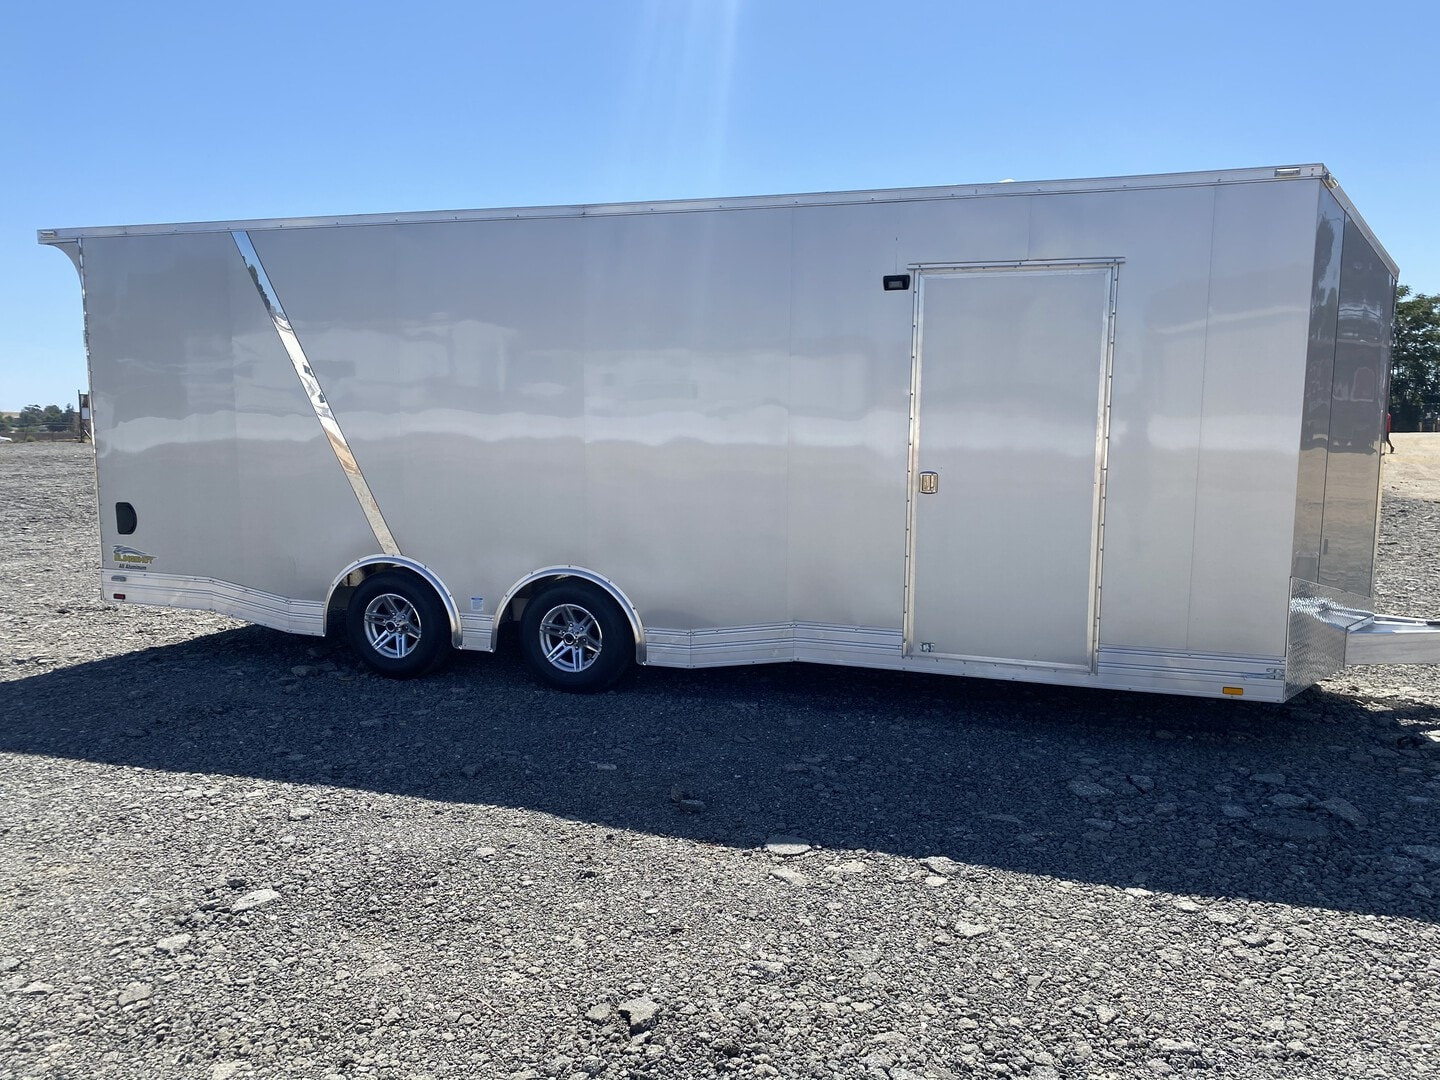 New, 2022, Forest River, 2022 Forest River Slingshot 8.5x24' in Beaumont, CA, Enclosed Trailers